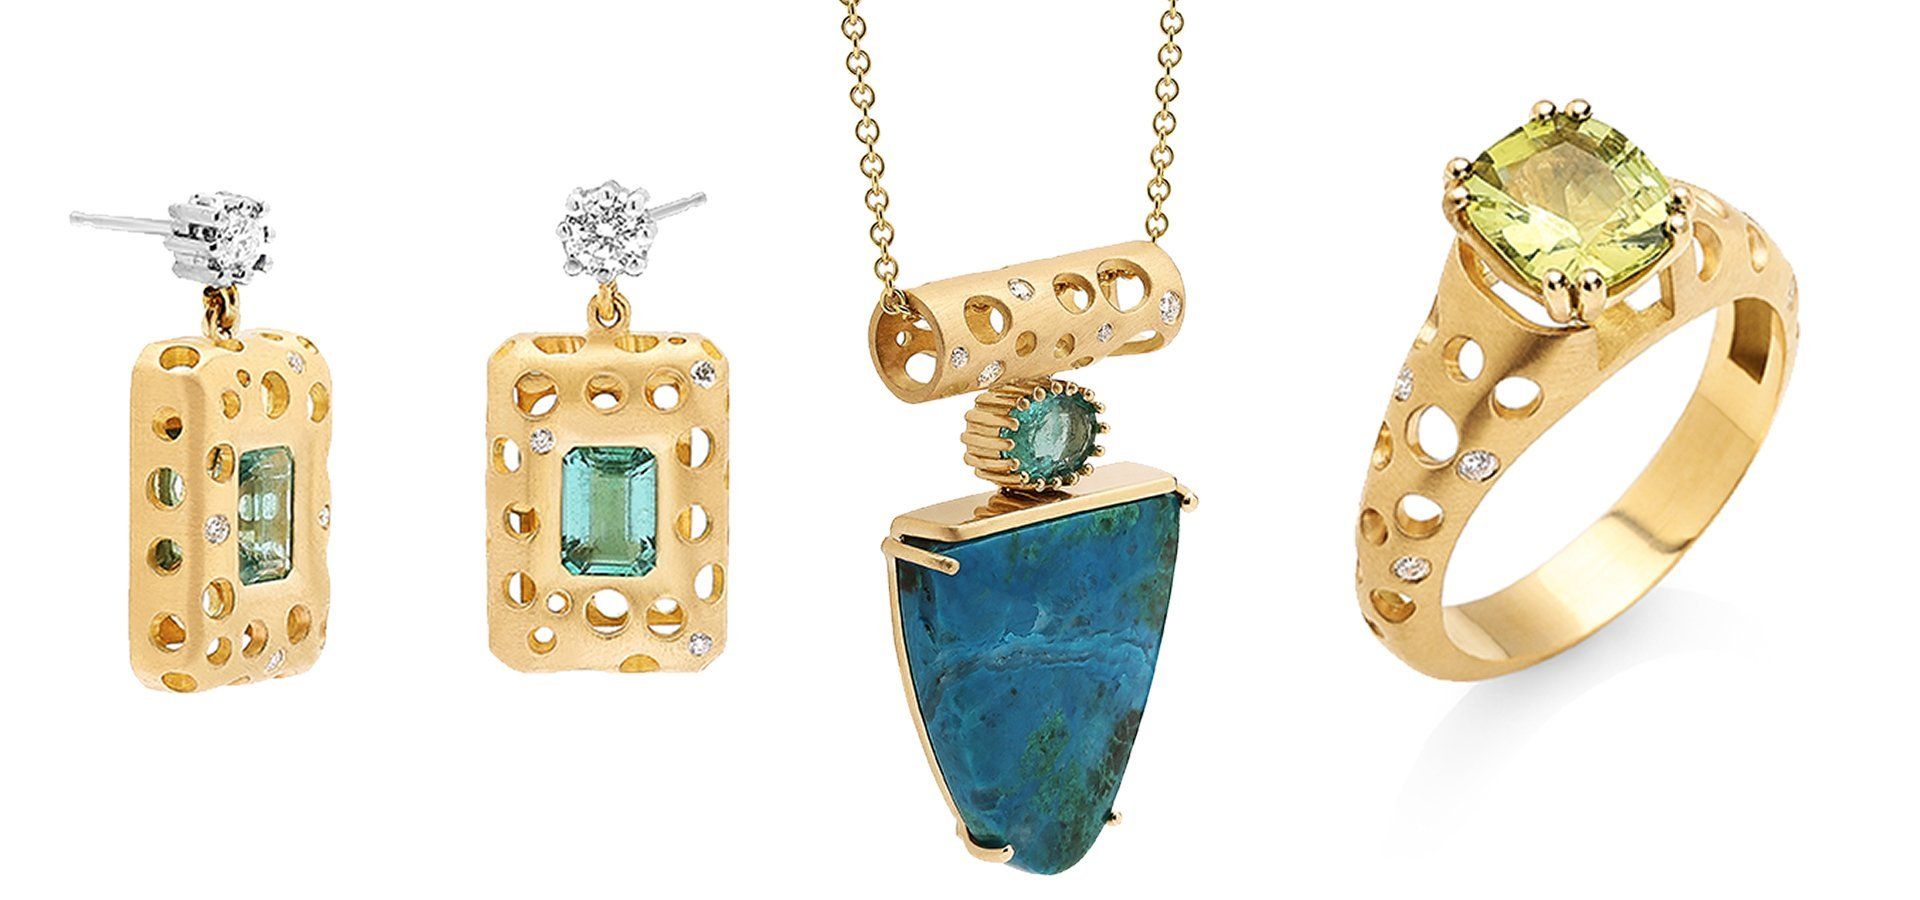 July 14th and 15th LaNae Fine Jewelry will be hosting a trunk show for Dana Bronfman jewelry. Dana Bronfman brings an edge and chic sophistication in her jewelry line. Nothing can compare to her distinct fresh jewelry design.